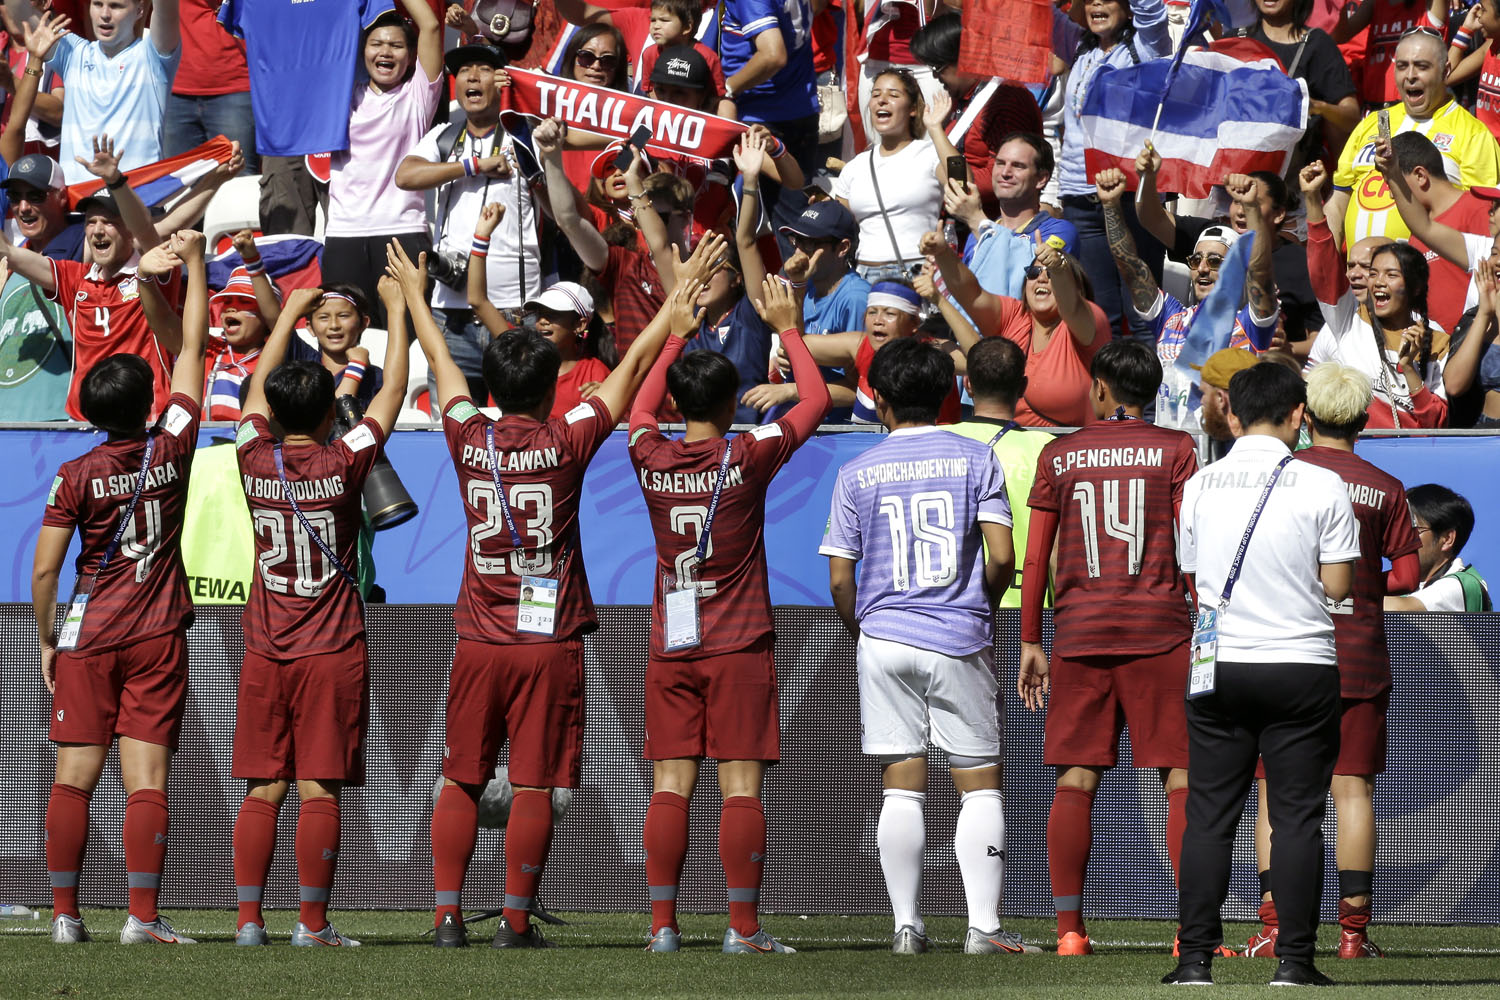 Thailand's players celebrate in front of their supporters after the Women's World Cup Group F soccer match between Sweden and Thailand at the Stade de Nice in Nice on Sunday. (AP photo)